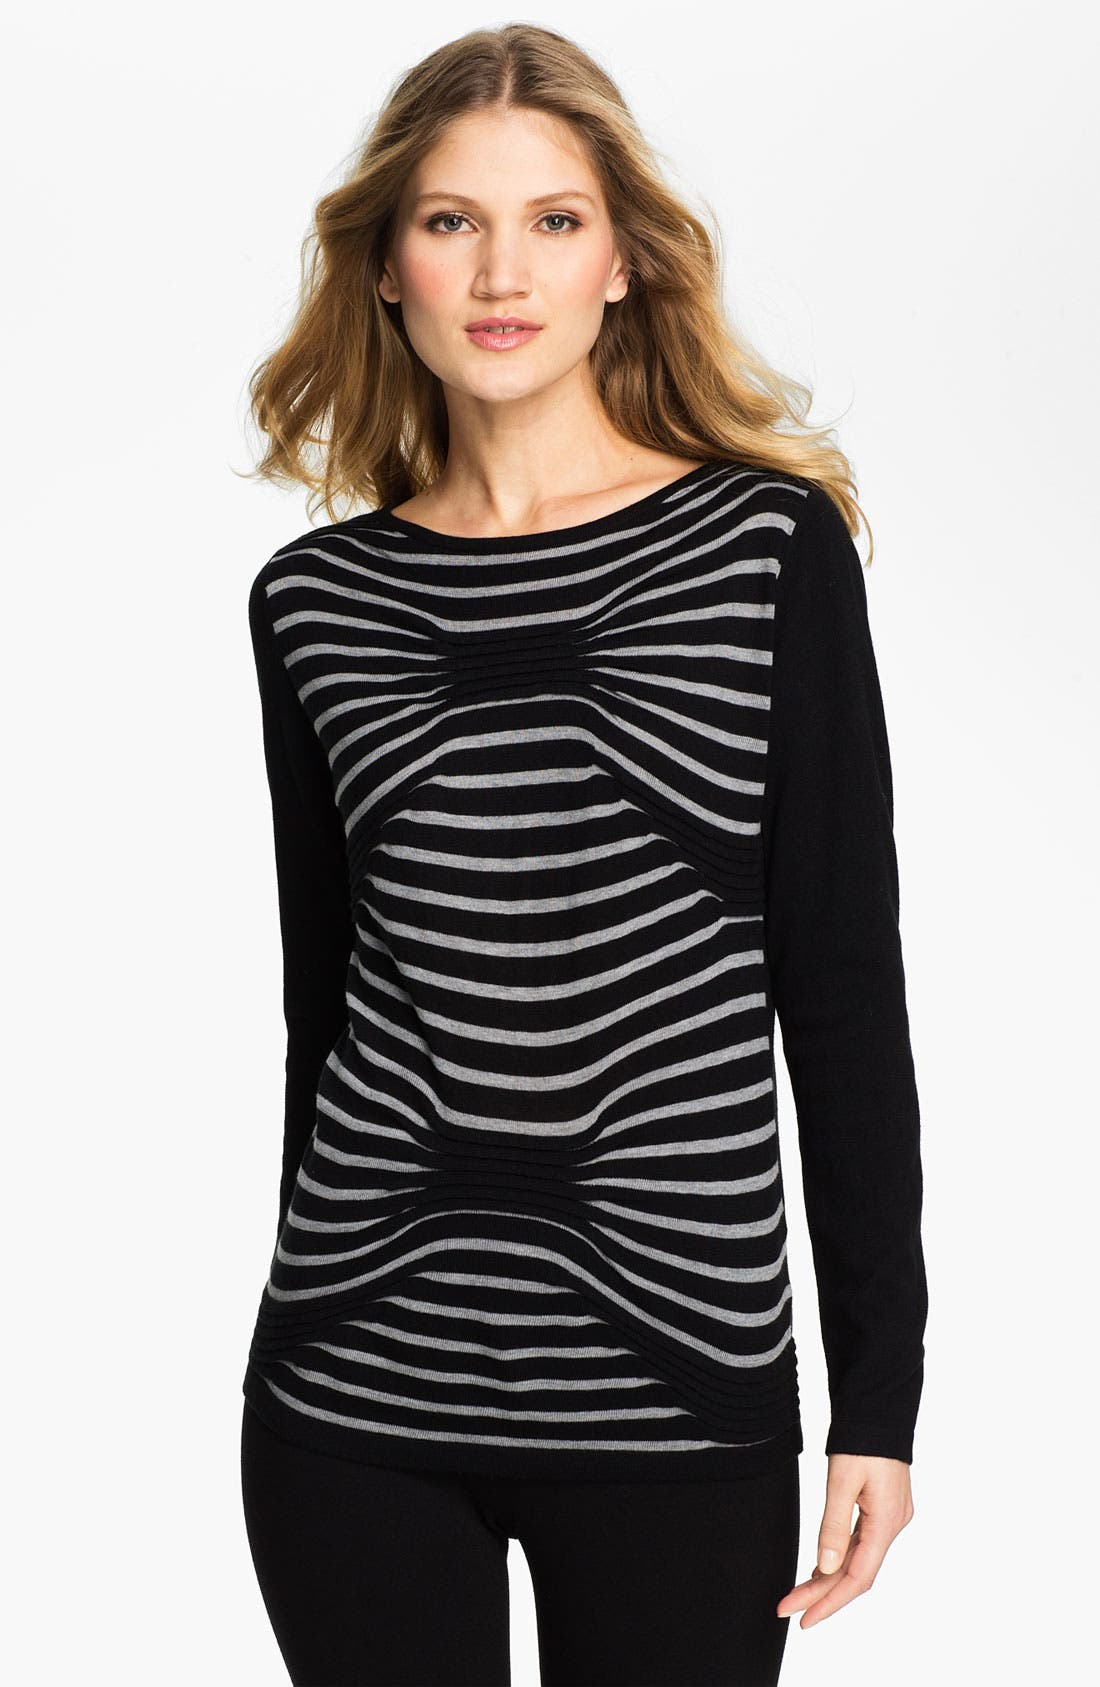 Alternate Image 1 Selected - Beatrix Ost Stripe & Pleat Sweater (Online Exclusive)